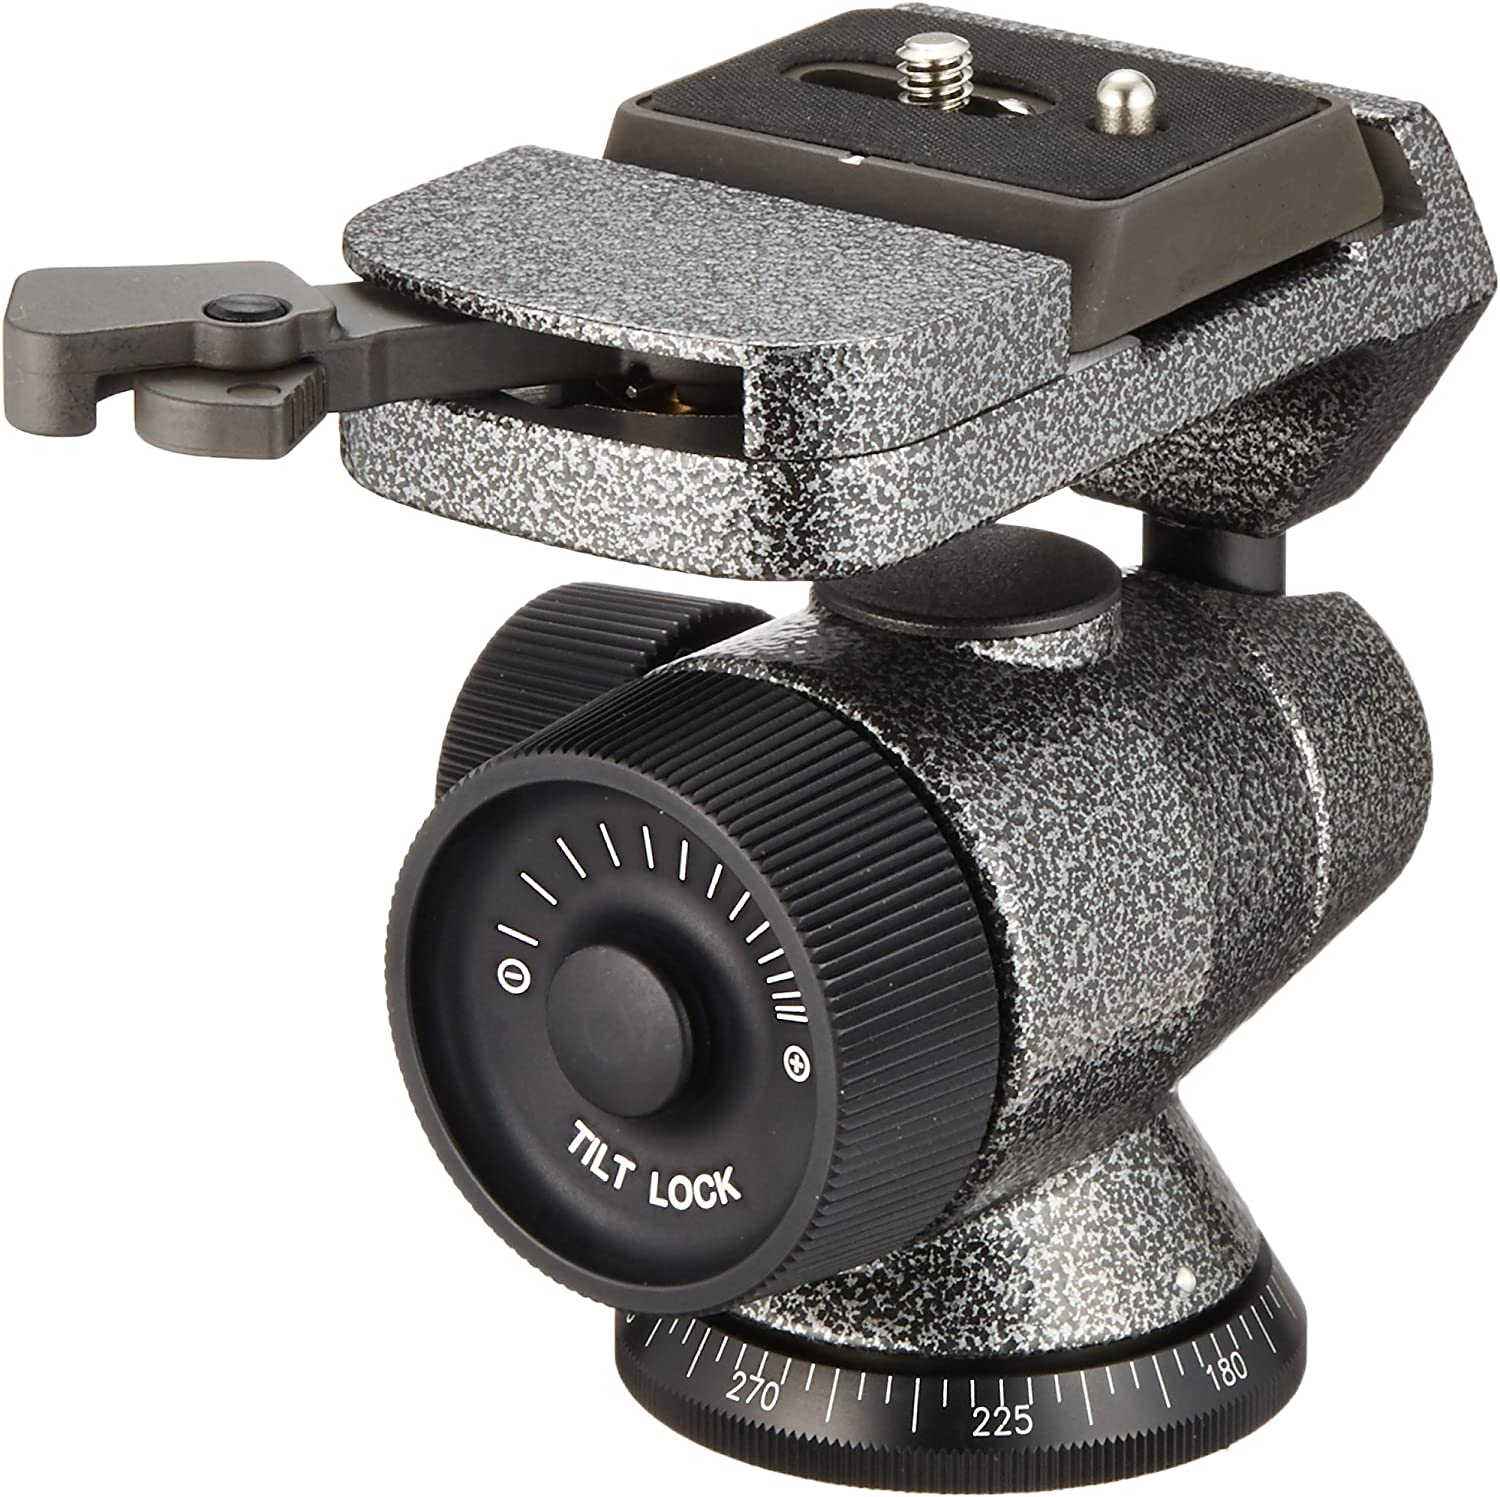 Replaces G1276M Grey Gitzo GH2750QR Series 2 Magnesium Quick Release Off Center Ball Head